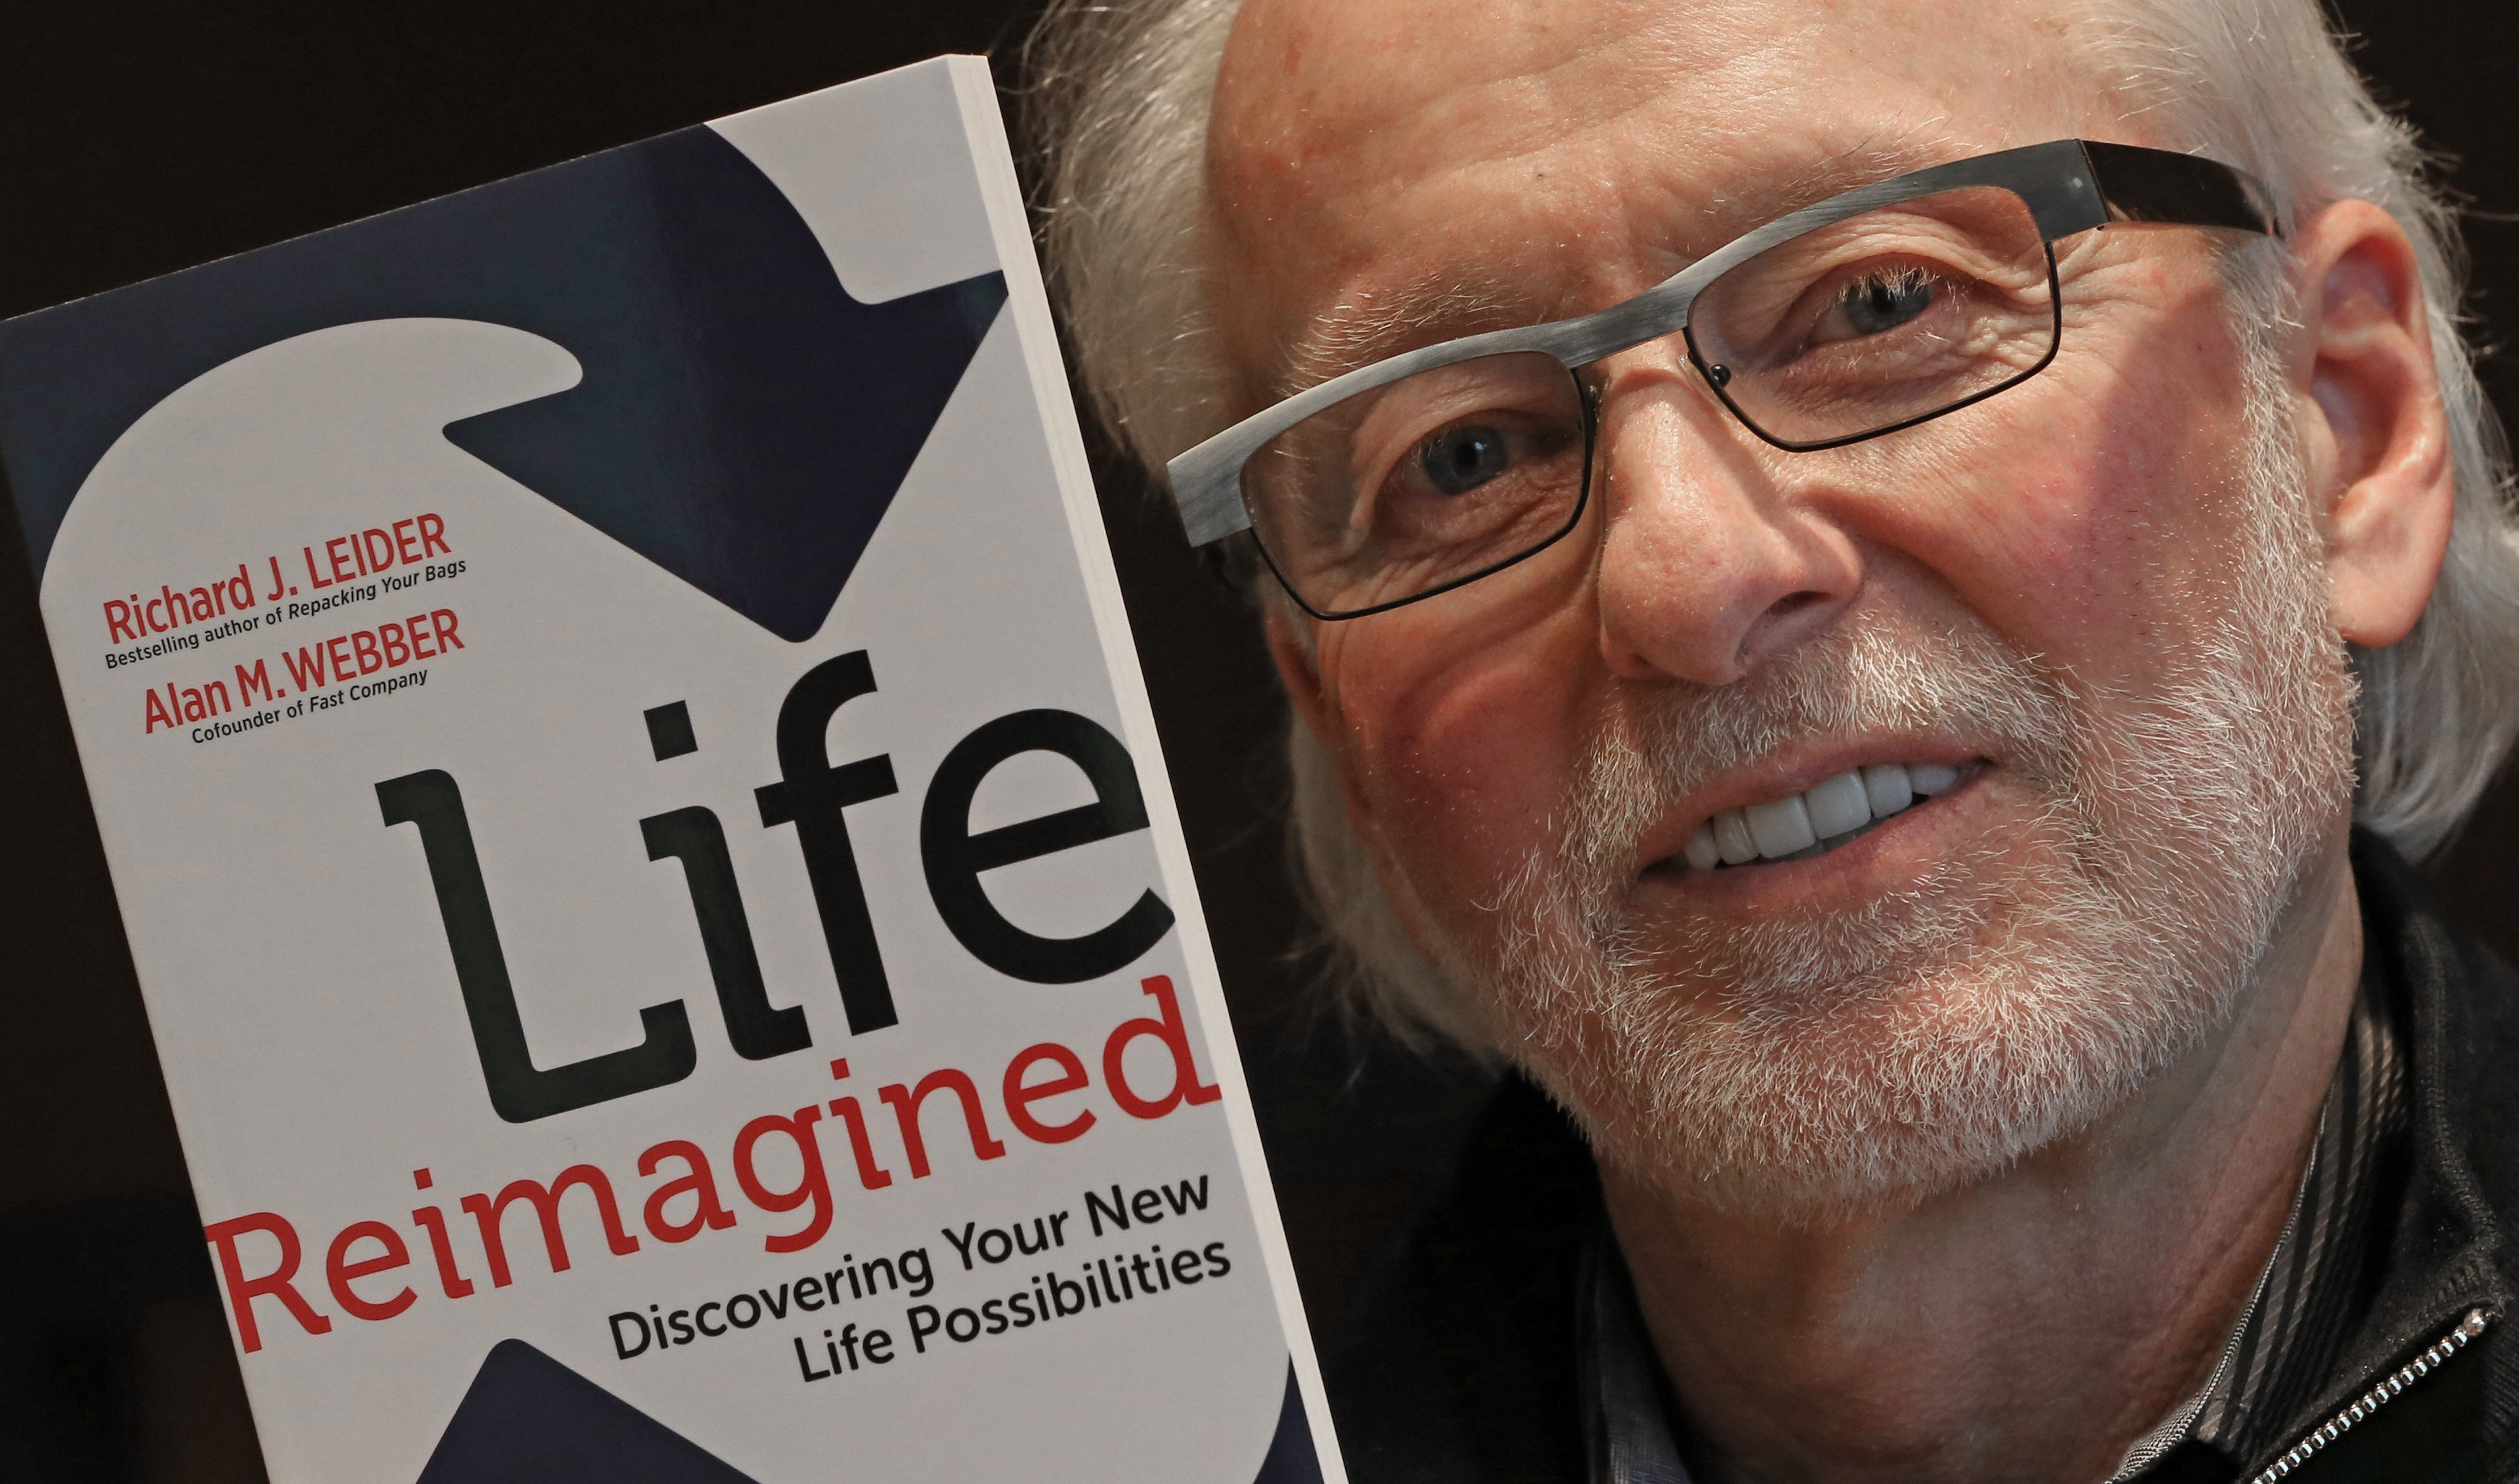 """Richard Leider's book, """"Life Reimagined,"""" is targeted at baby boomers and sponsored by AARP. He terms it a reality-based approach to a new phase of life."""